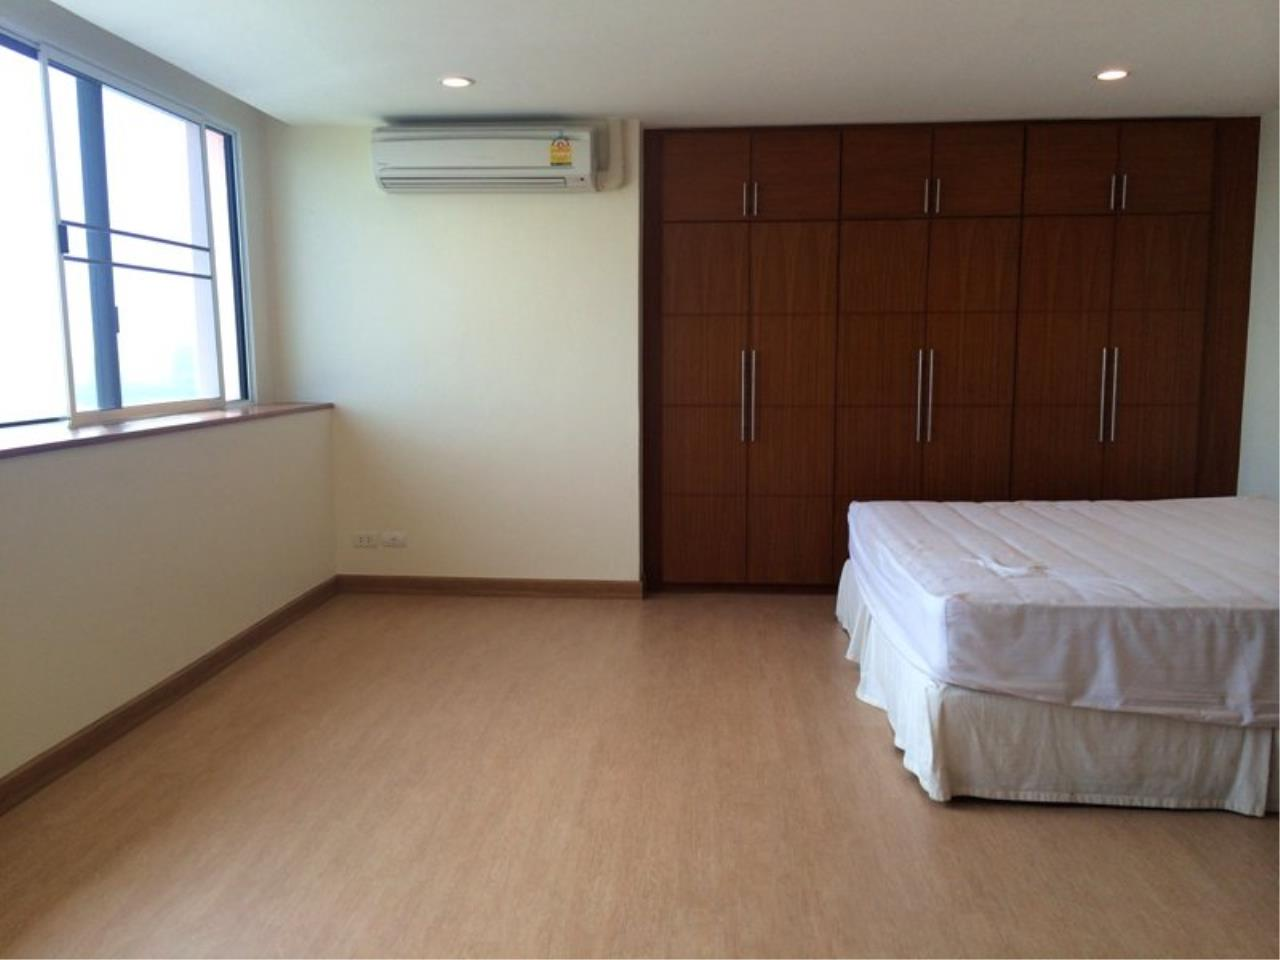 Piri Property Agency's Spacious 3 Bedrooms in the President Park Condominium for rent on high floor 4